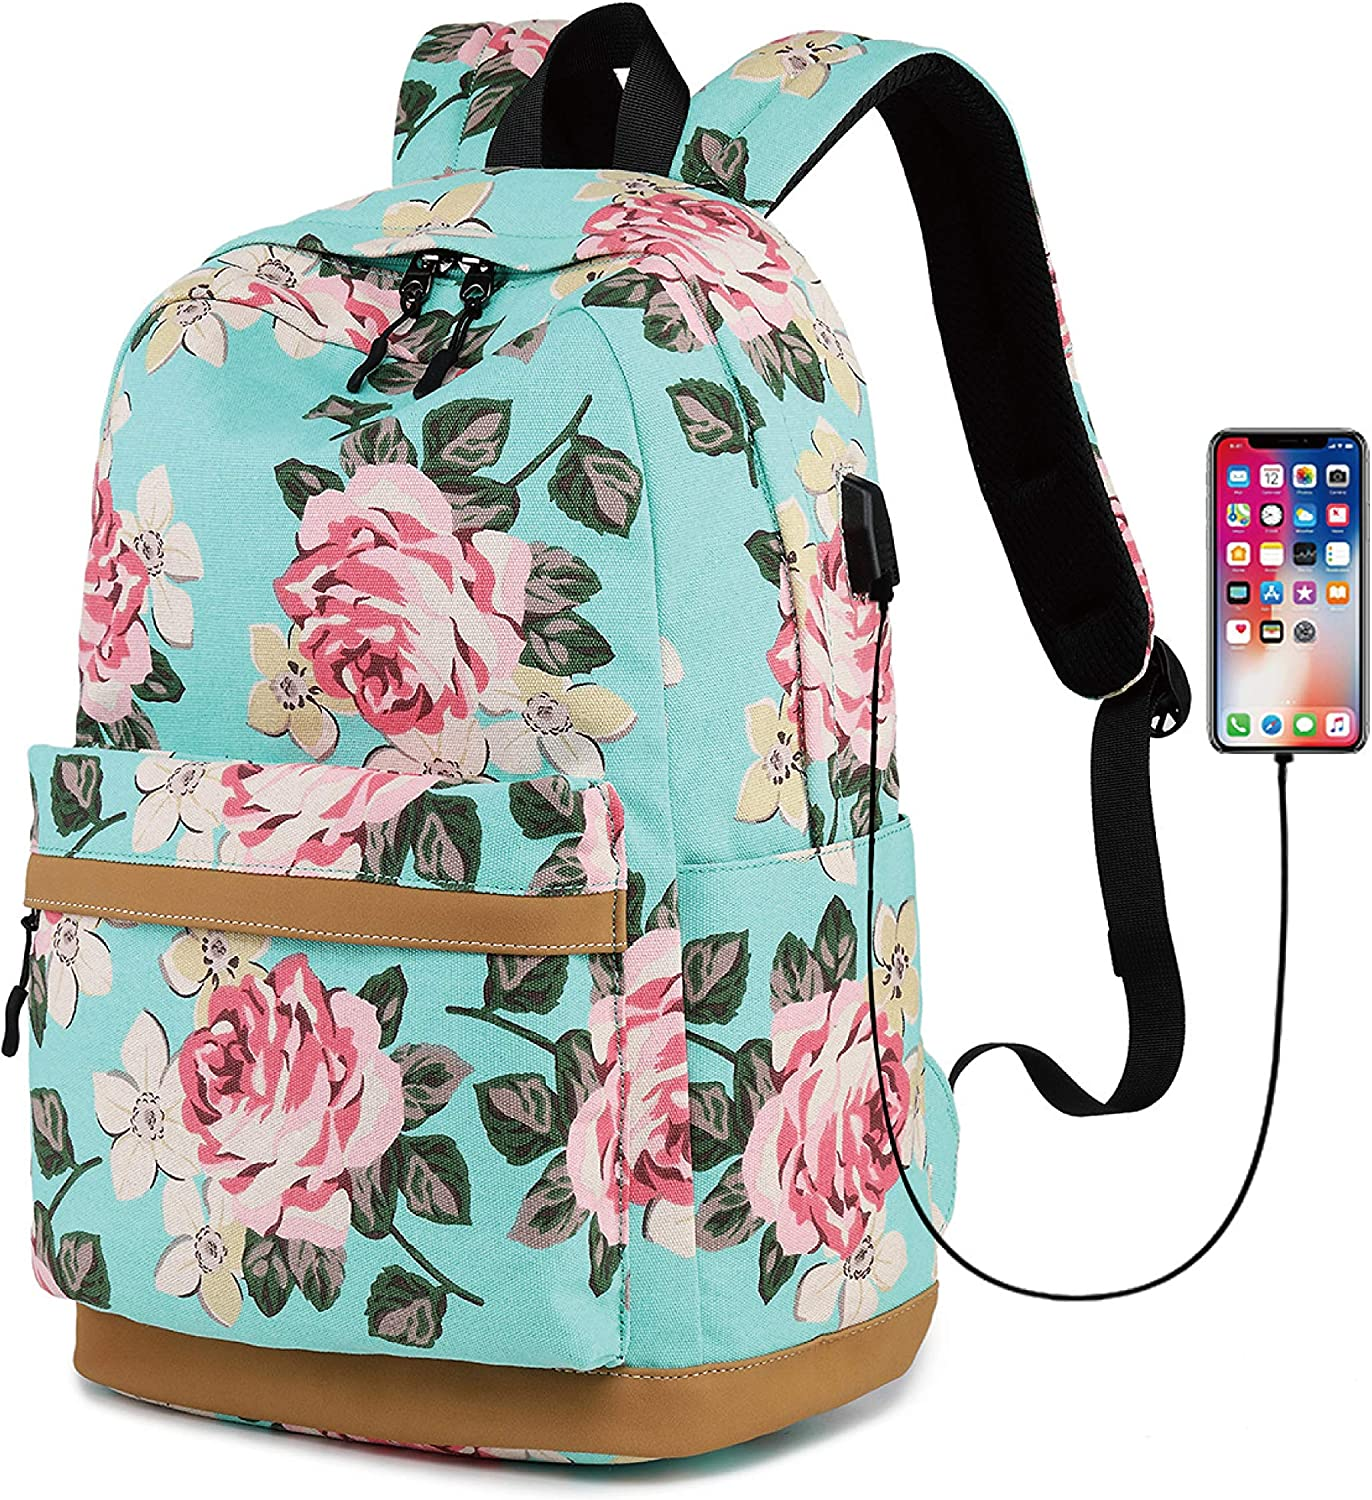 Backpack for Girls, Travel Laptop Backpack with USB Charging Port Large Capacity School Backpack for Student, Women, Teen Girls, Fits 15.6 inch Laptop Notebook Tablet GREEN FLOWER